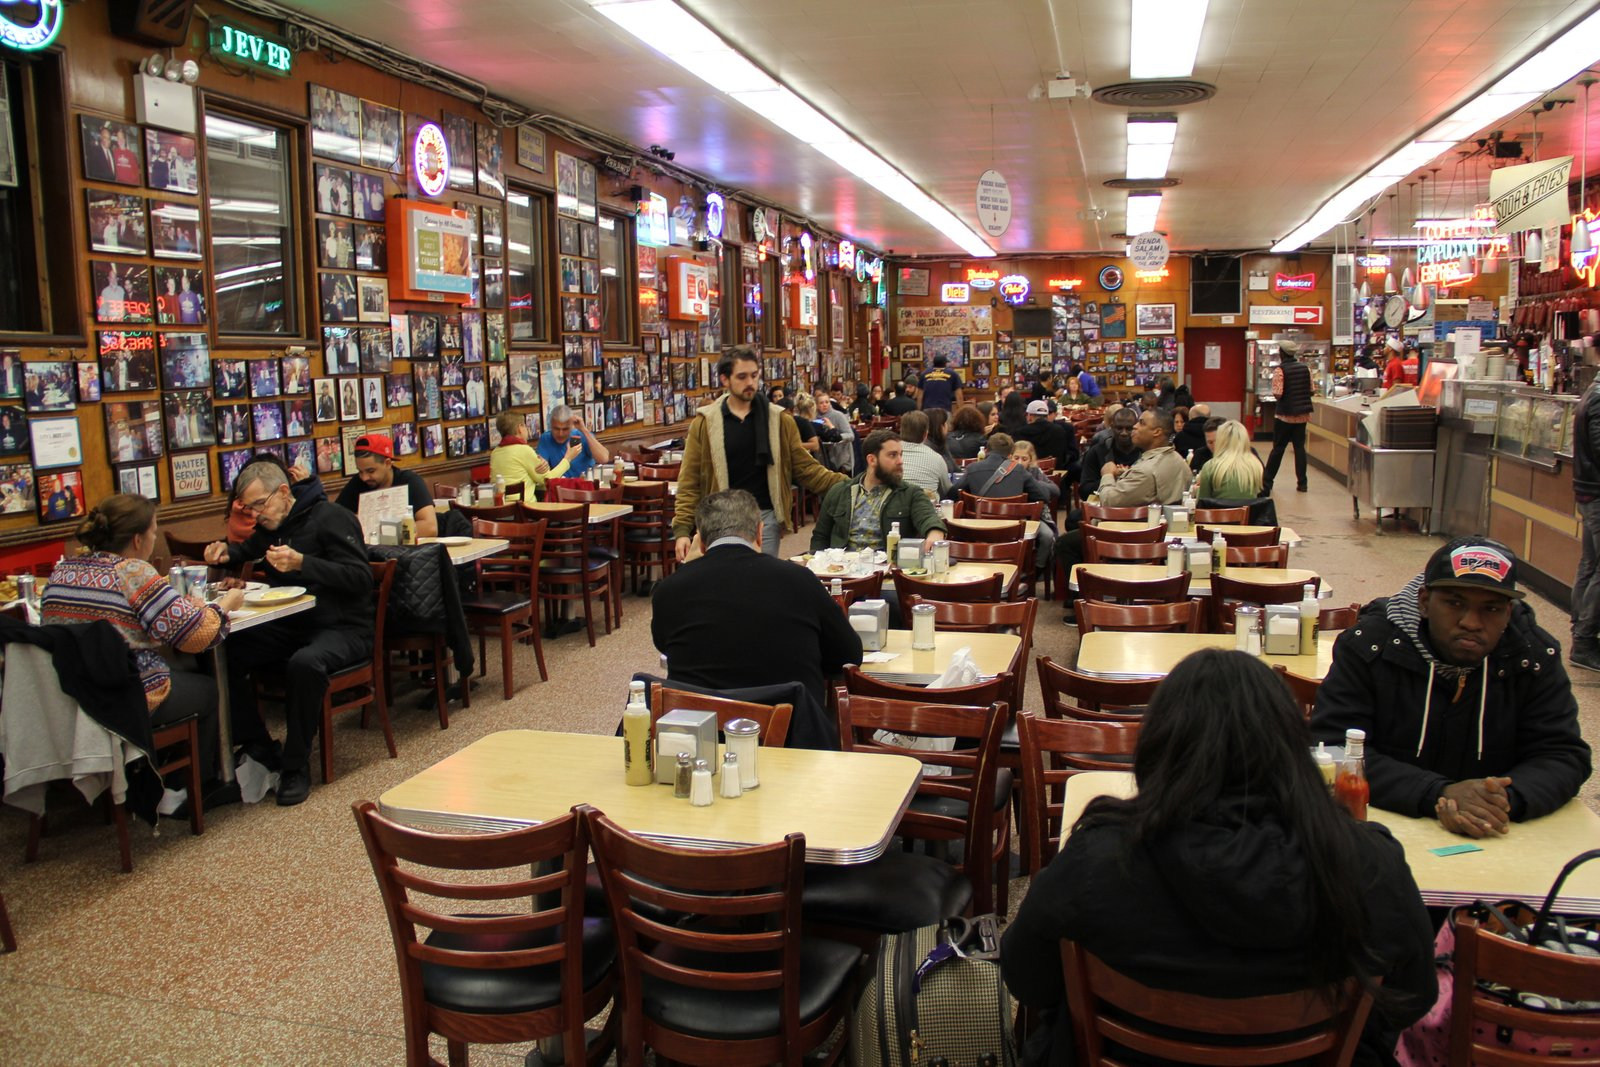 KATZS_DELICATESSEN_PASTRAMI_NEW_YORK_PHOTO_3475